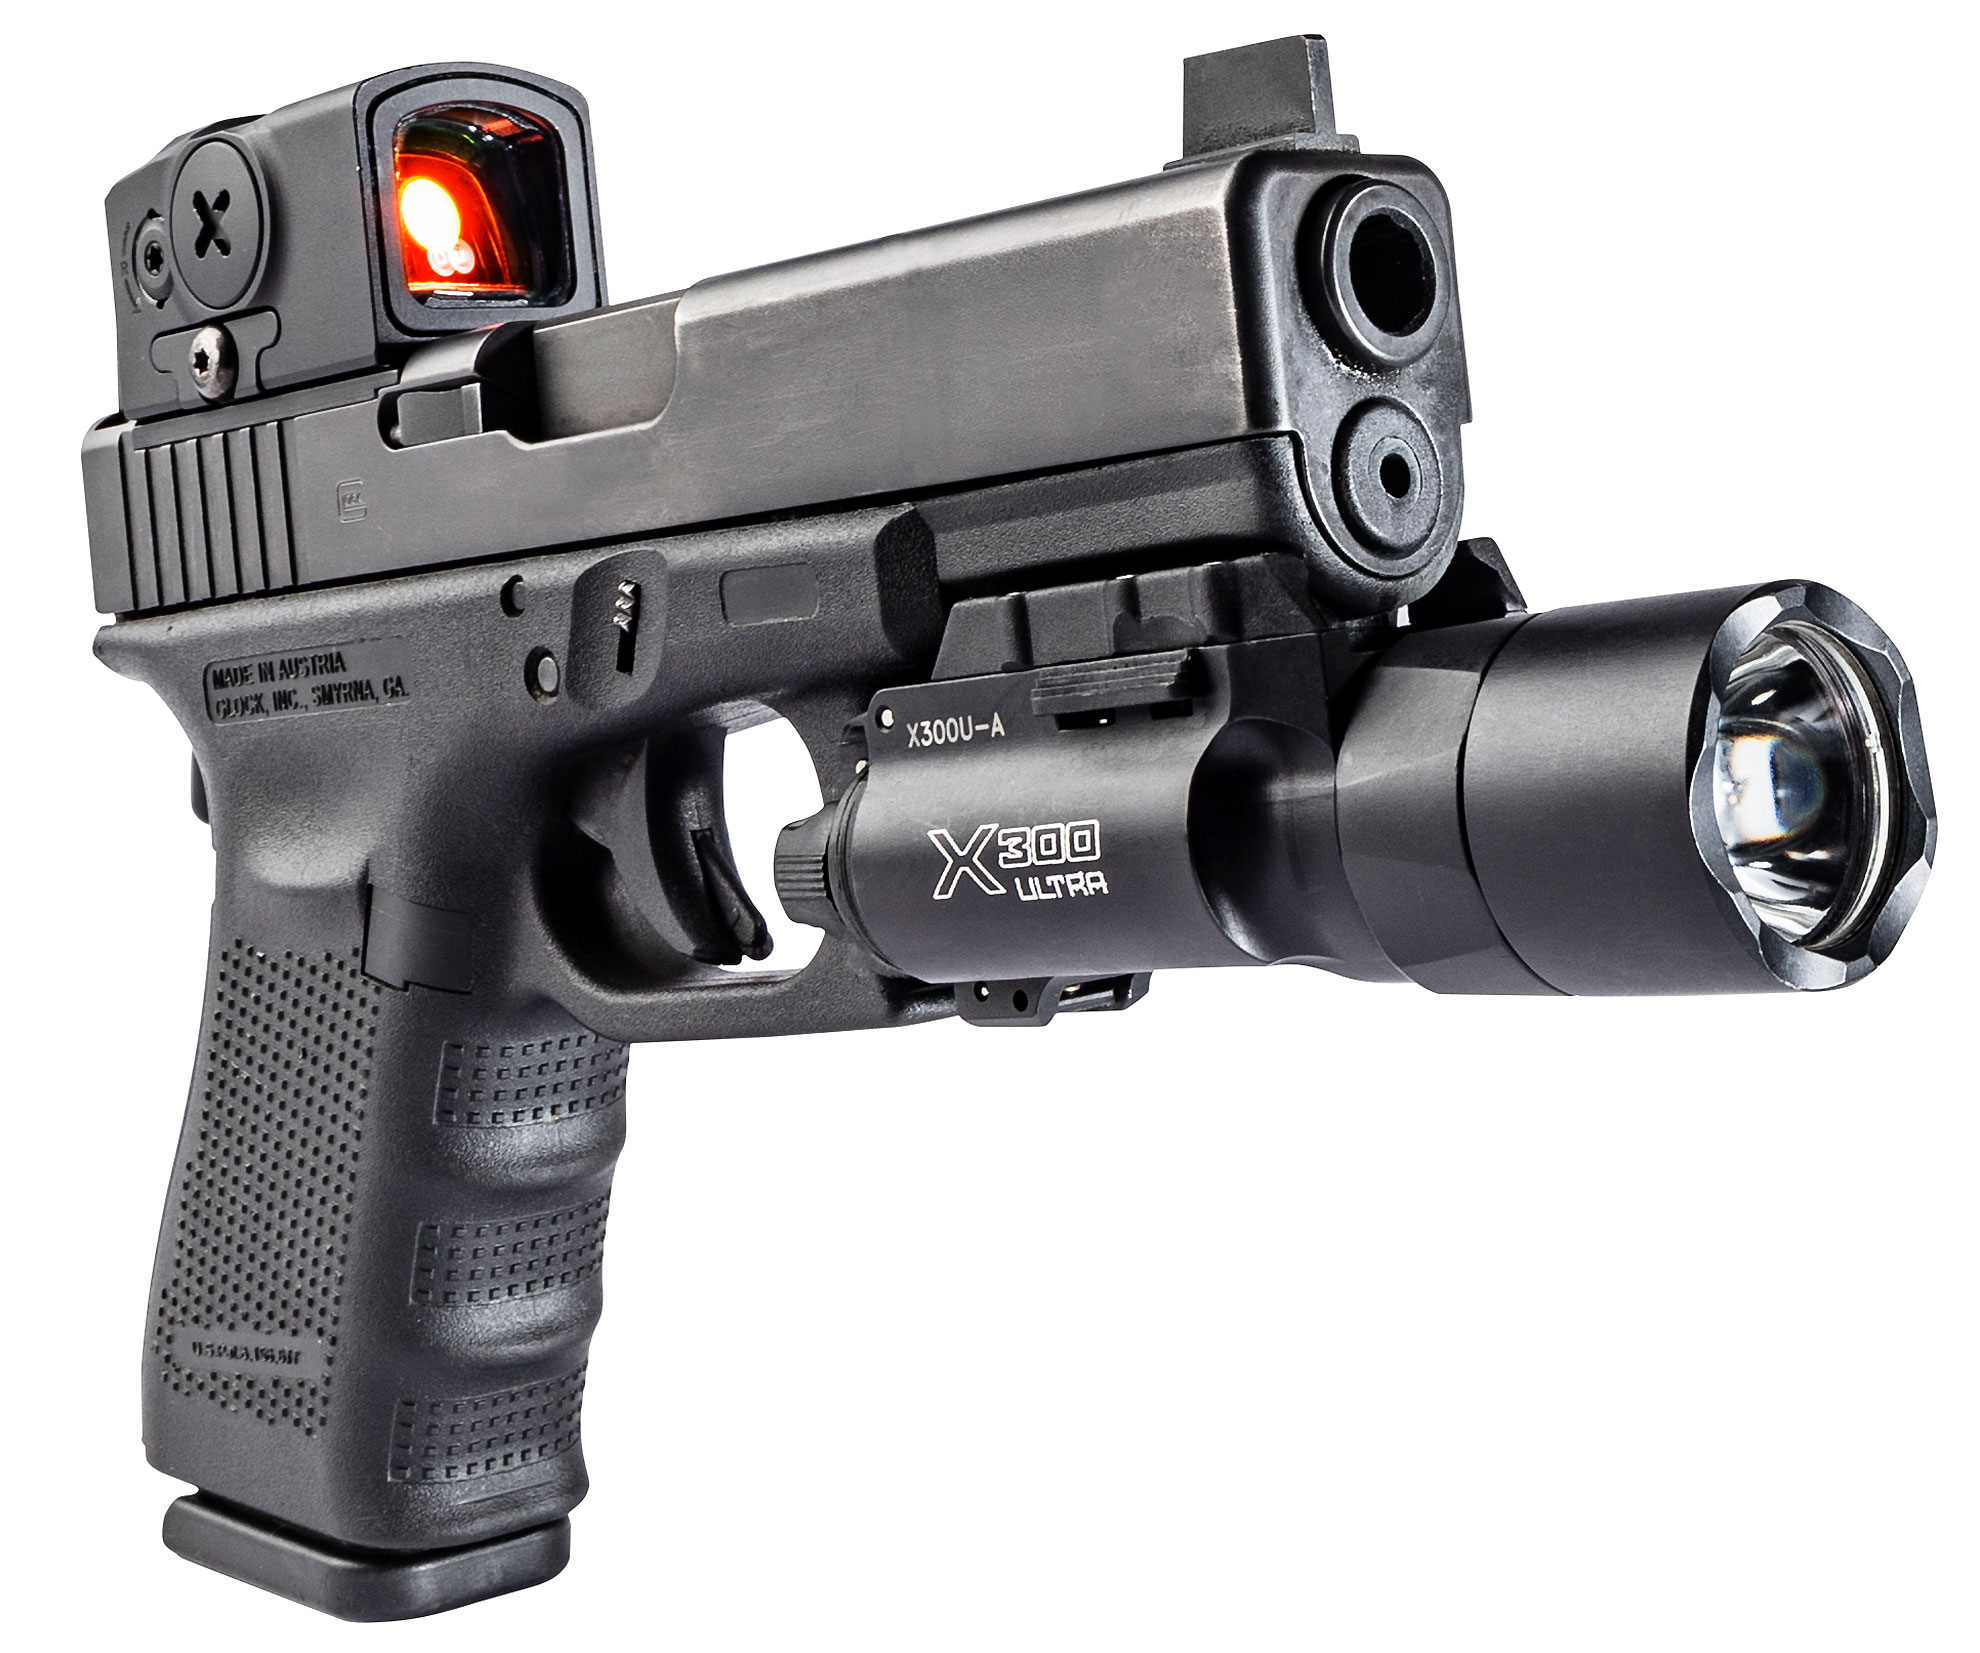 How A WeaponLight Saves LivesA Gun Talk Radio Caller's SureFire X300 Makes All The Difference